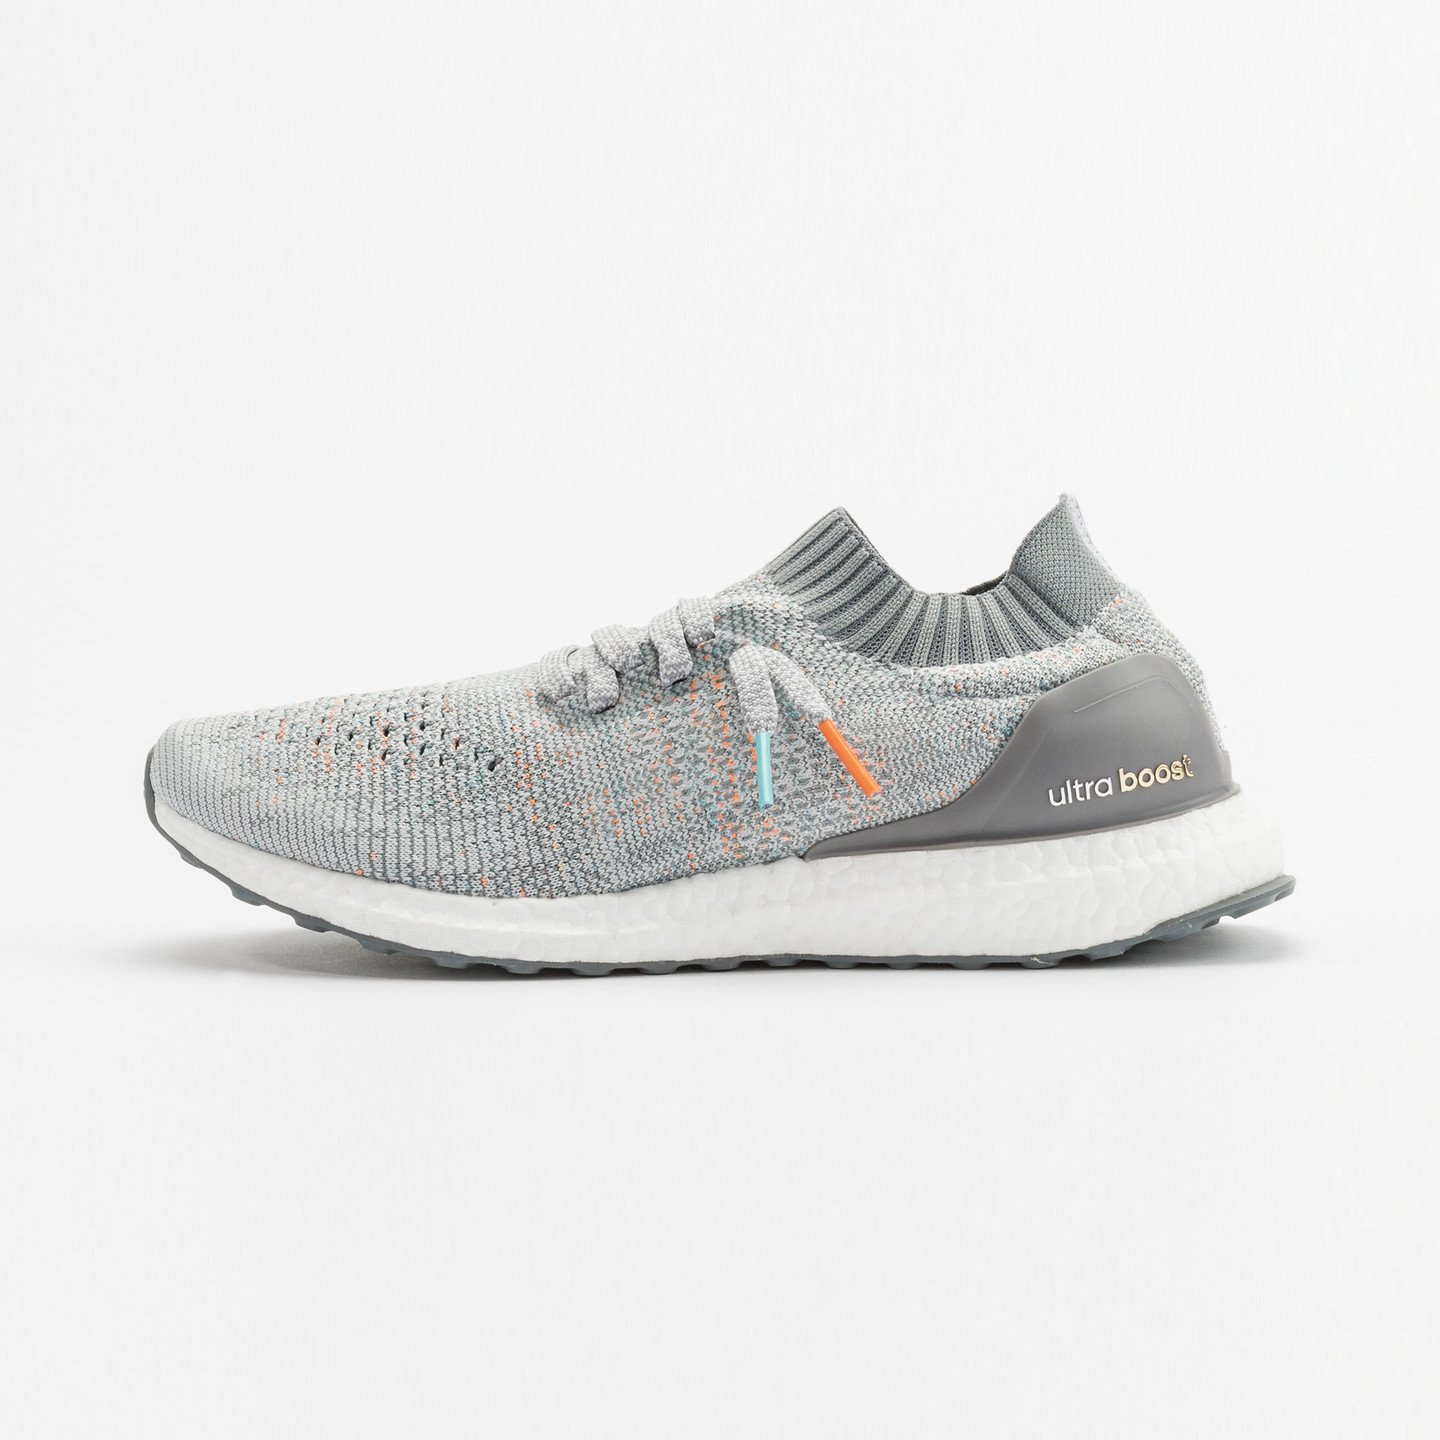 Adidas Ultra Boost Uncaged 'Miami Dolphins' Clear Grey / Mid Grey / Orange / Aqua BB4489-46